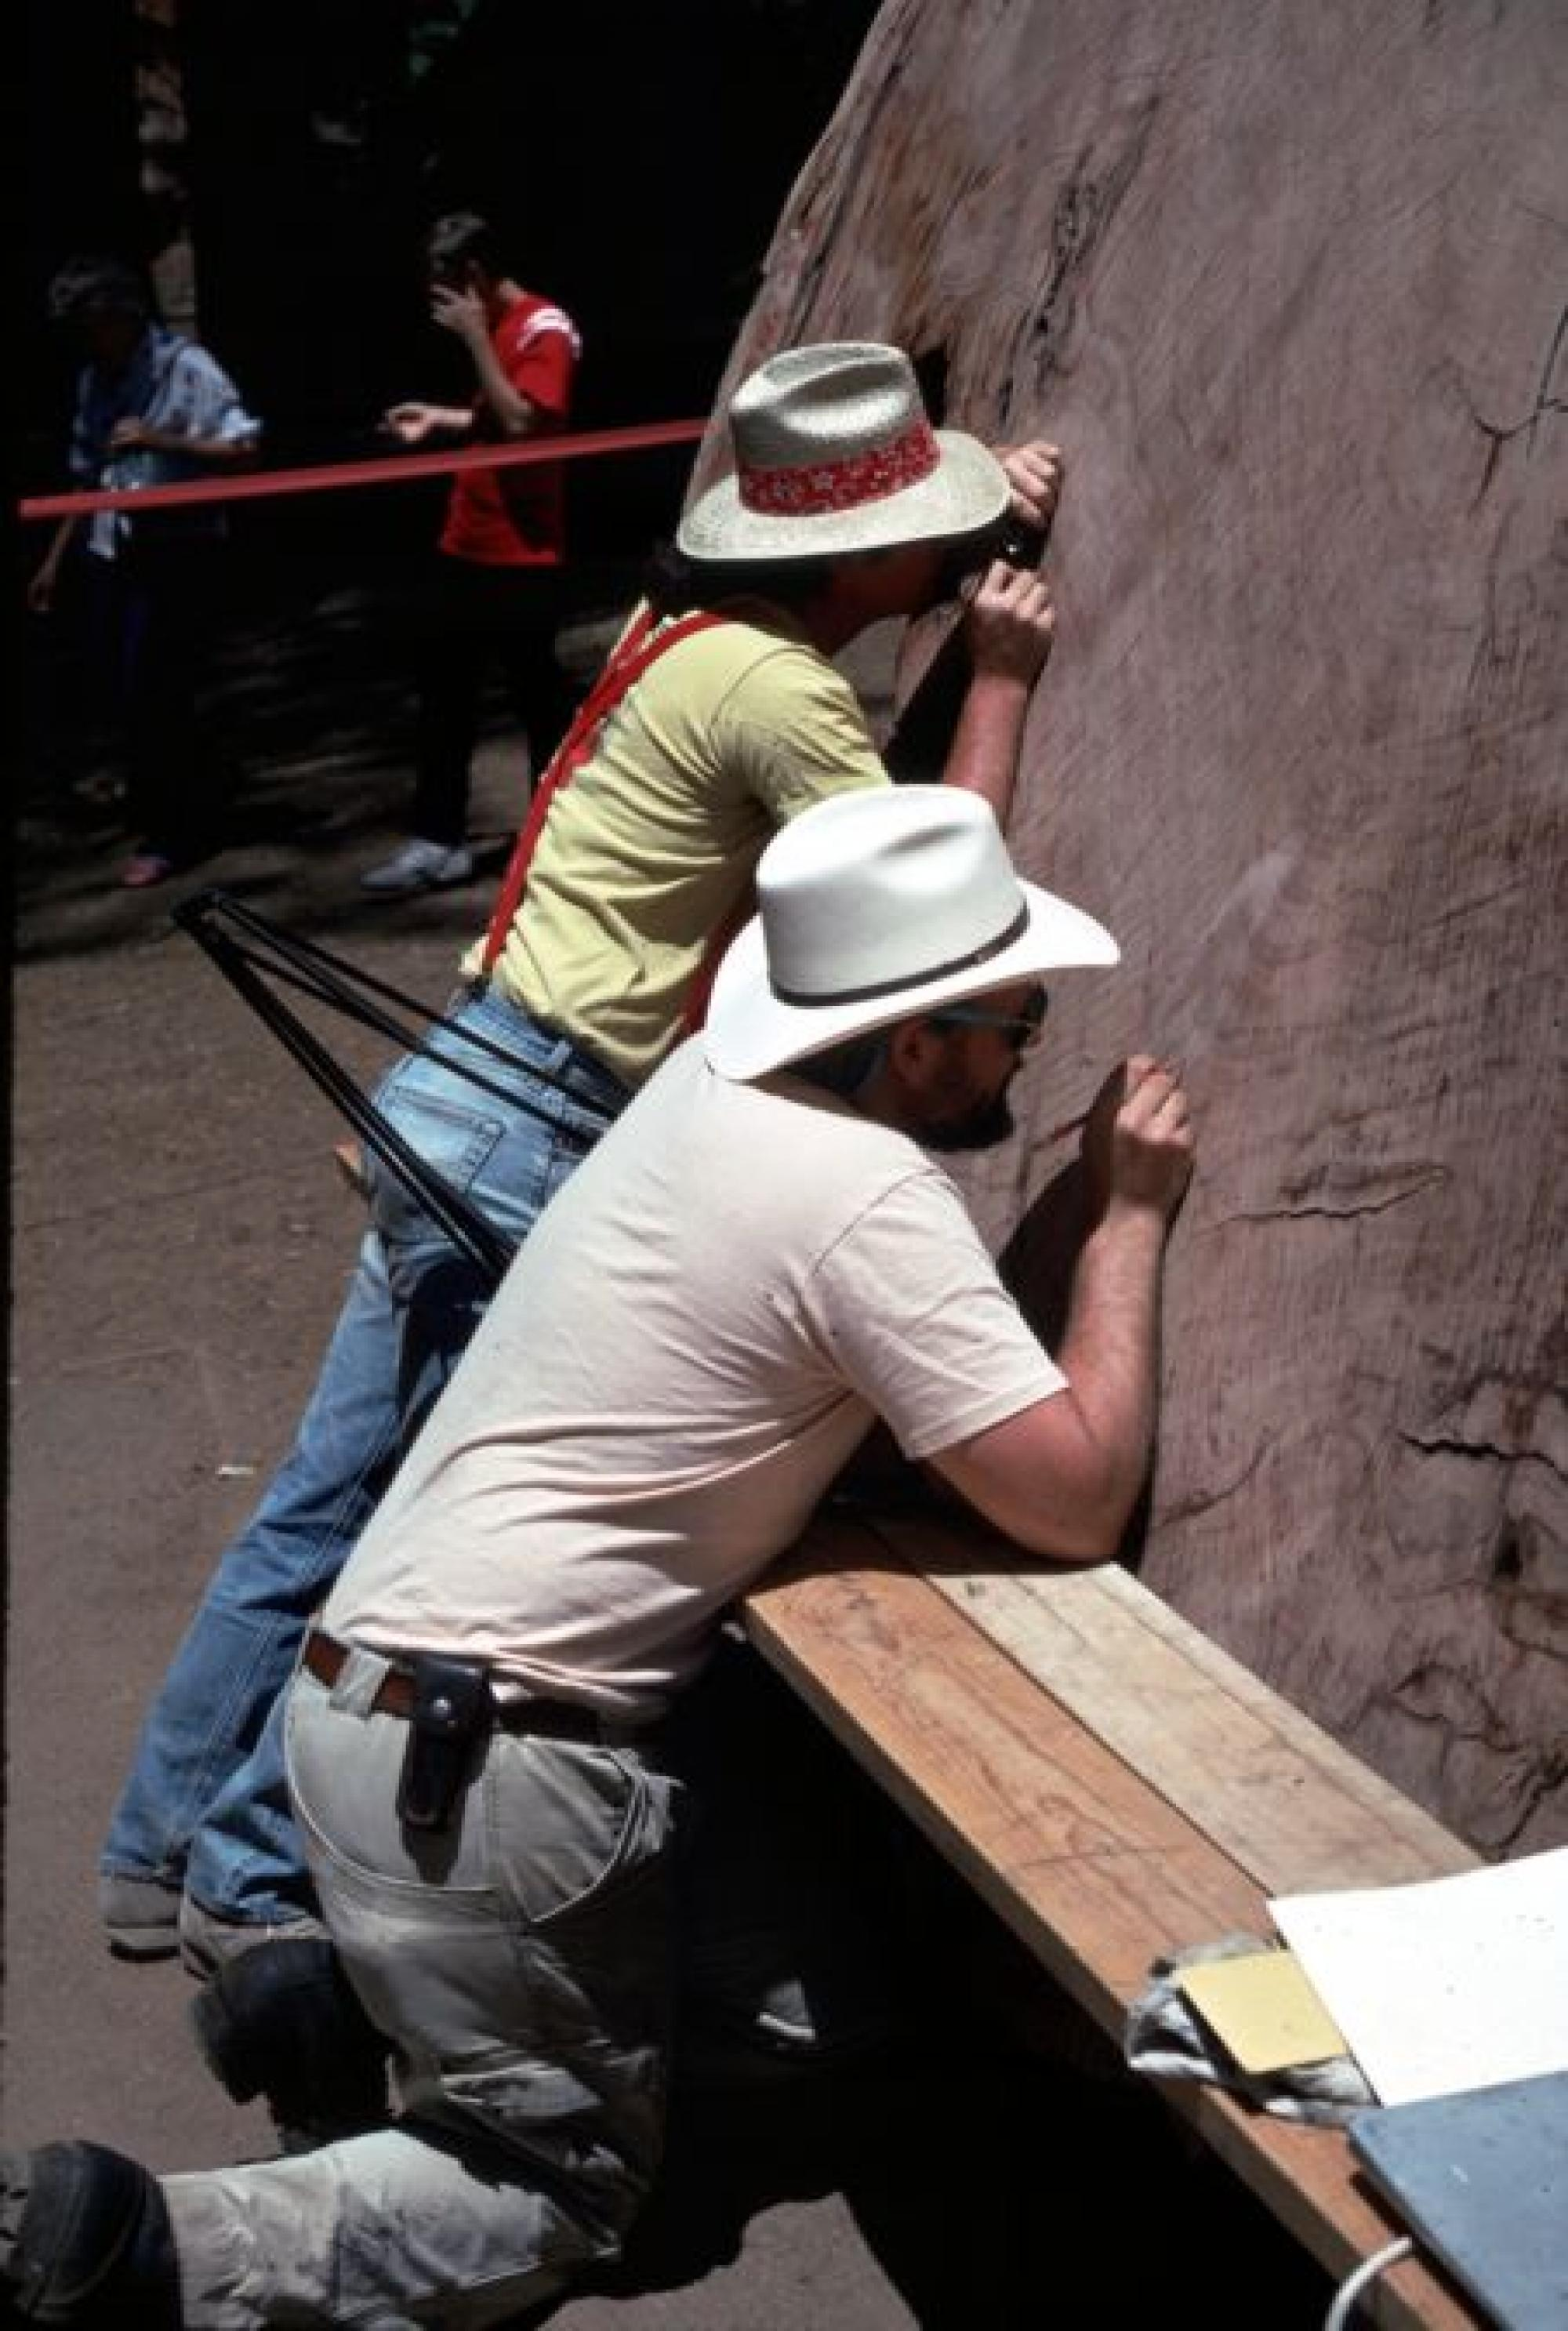 Researchers Peter Brown and Tom Swetnam dating the tree-rings and fire scars on a cross-section of a giant sequoia tree displayed near the General Sherman Tree in Sequoia National Park.